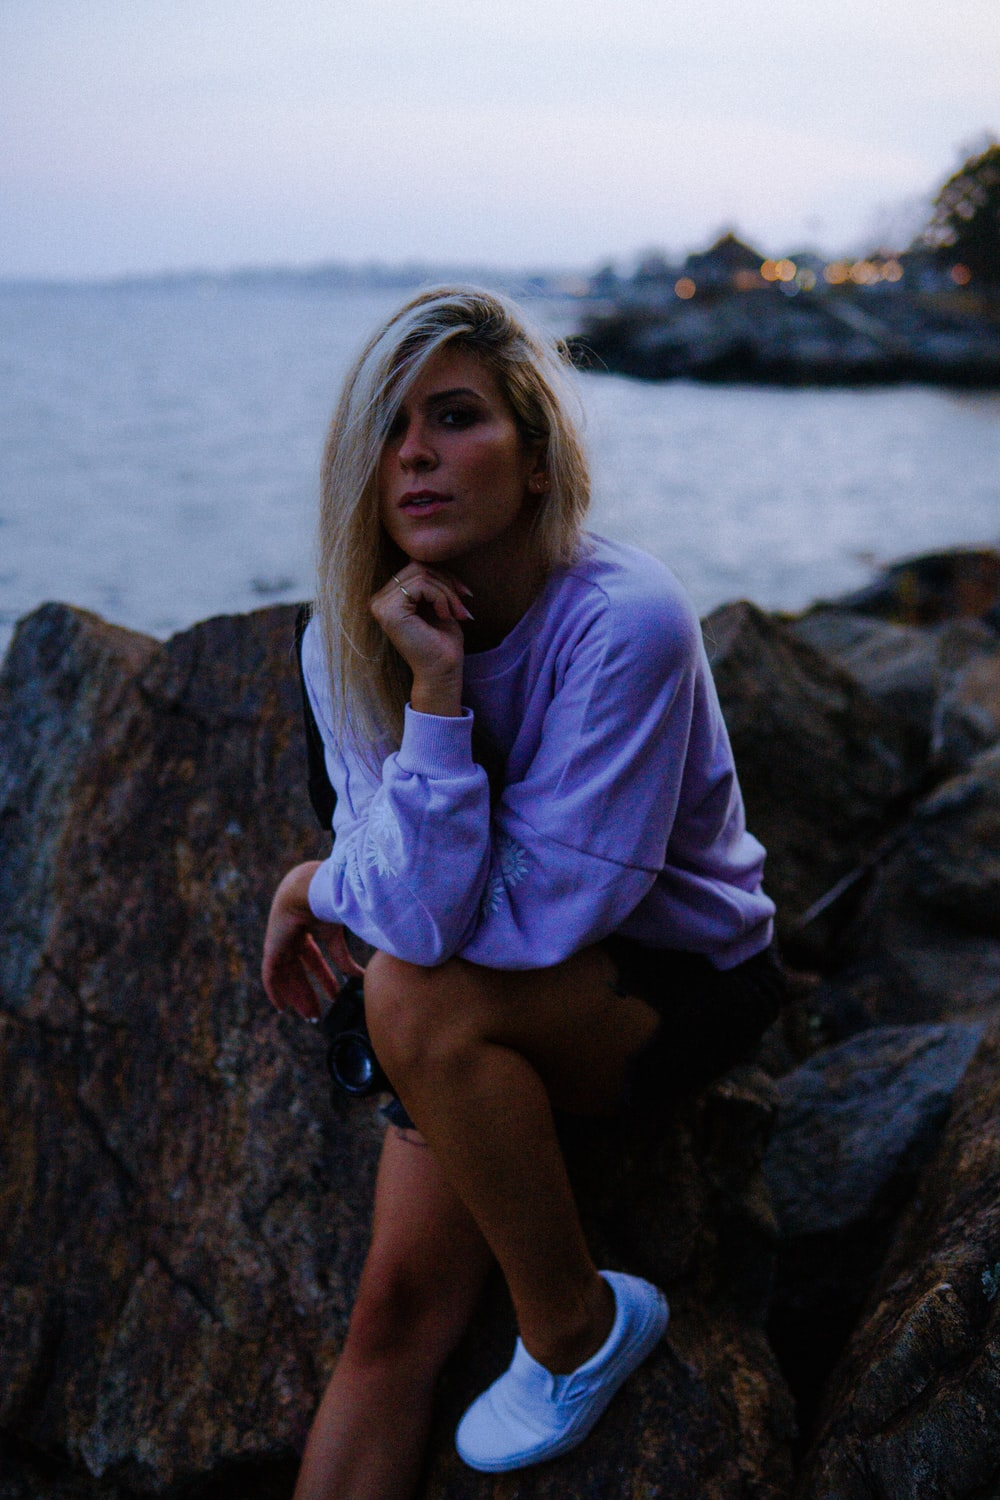 woman in purple long sleeve shirt sitting on rock near body of water during daytime